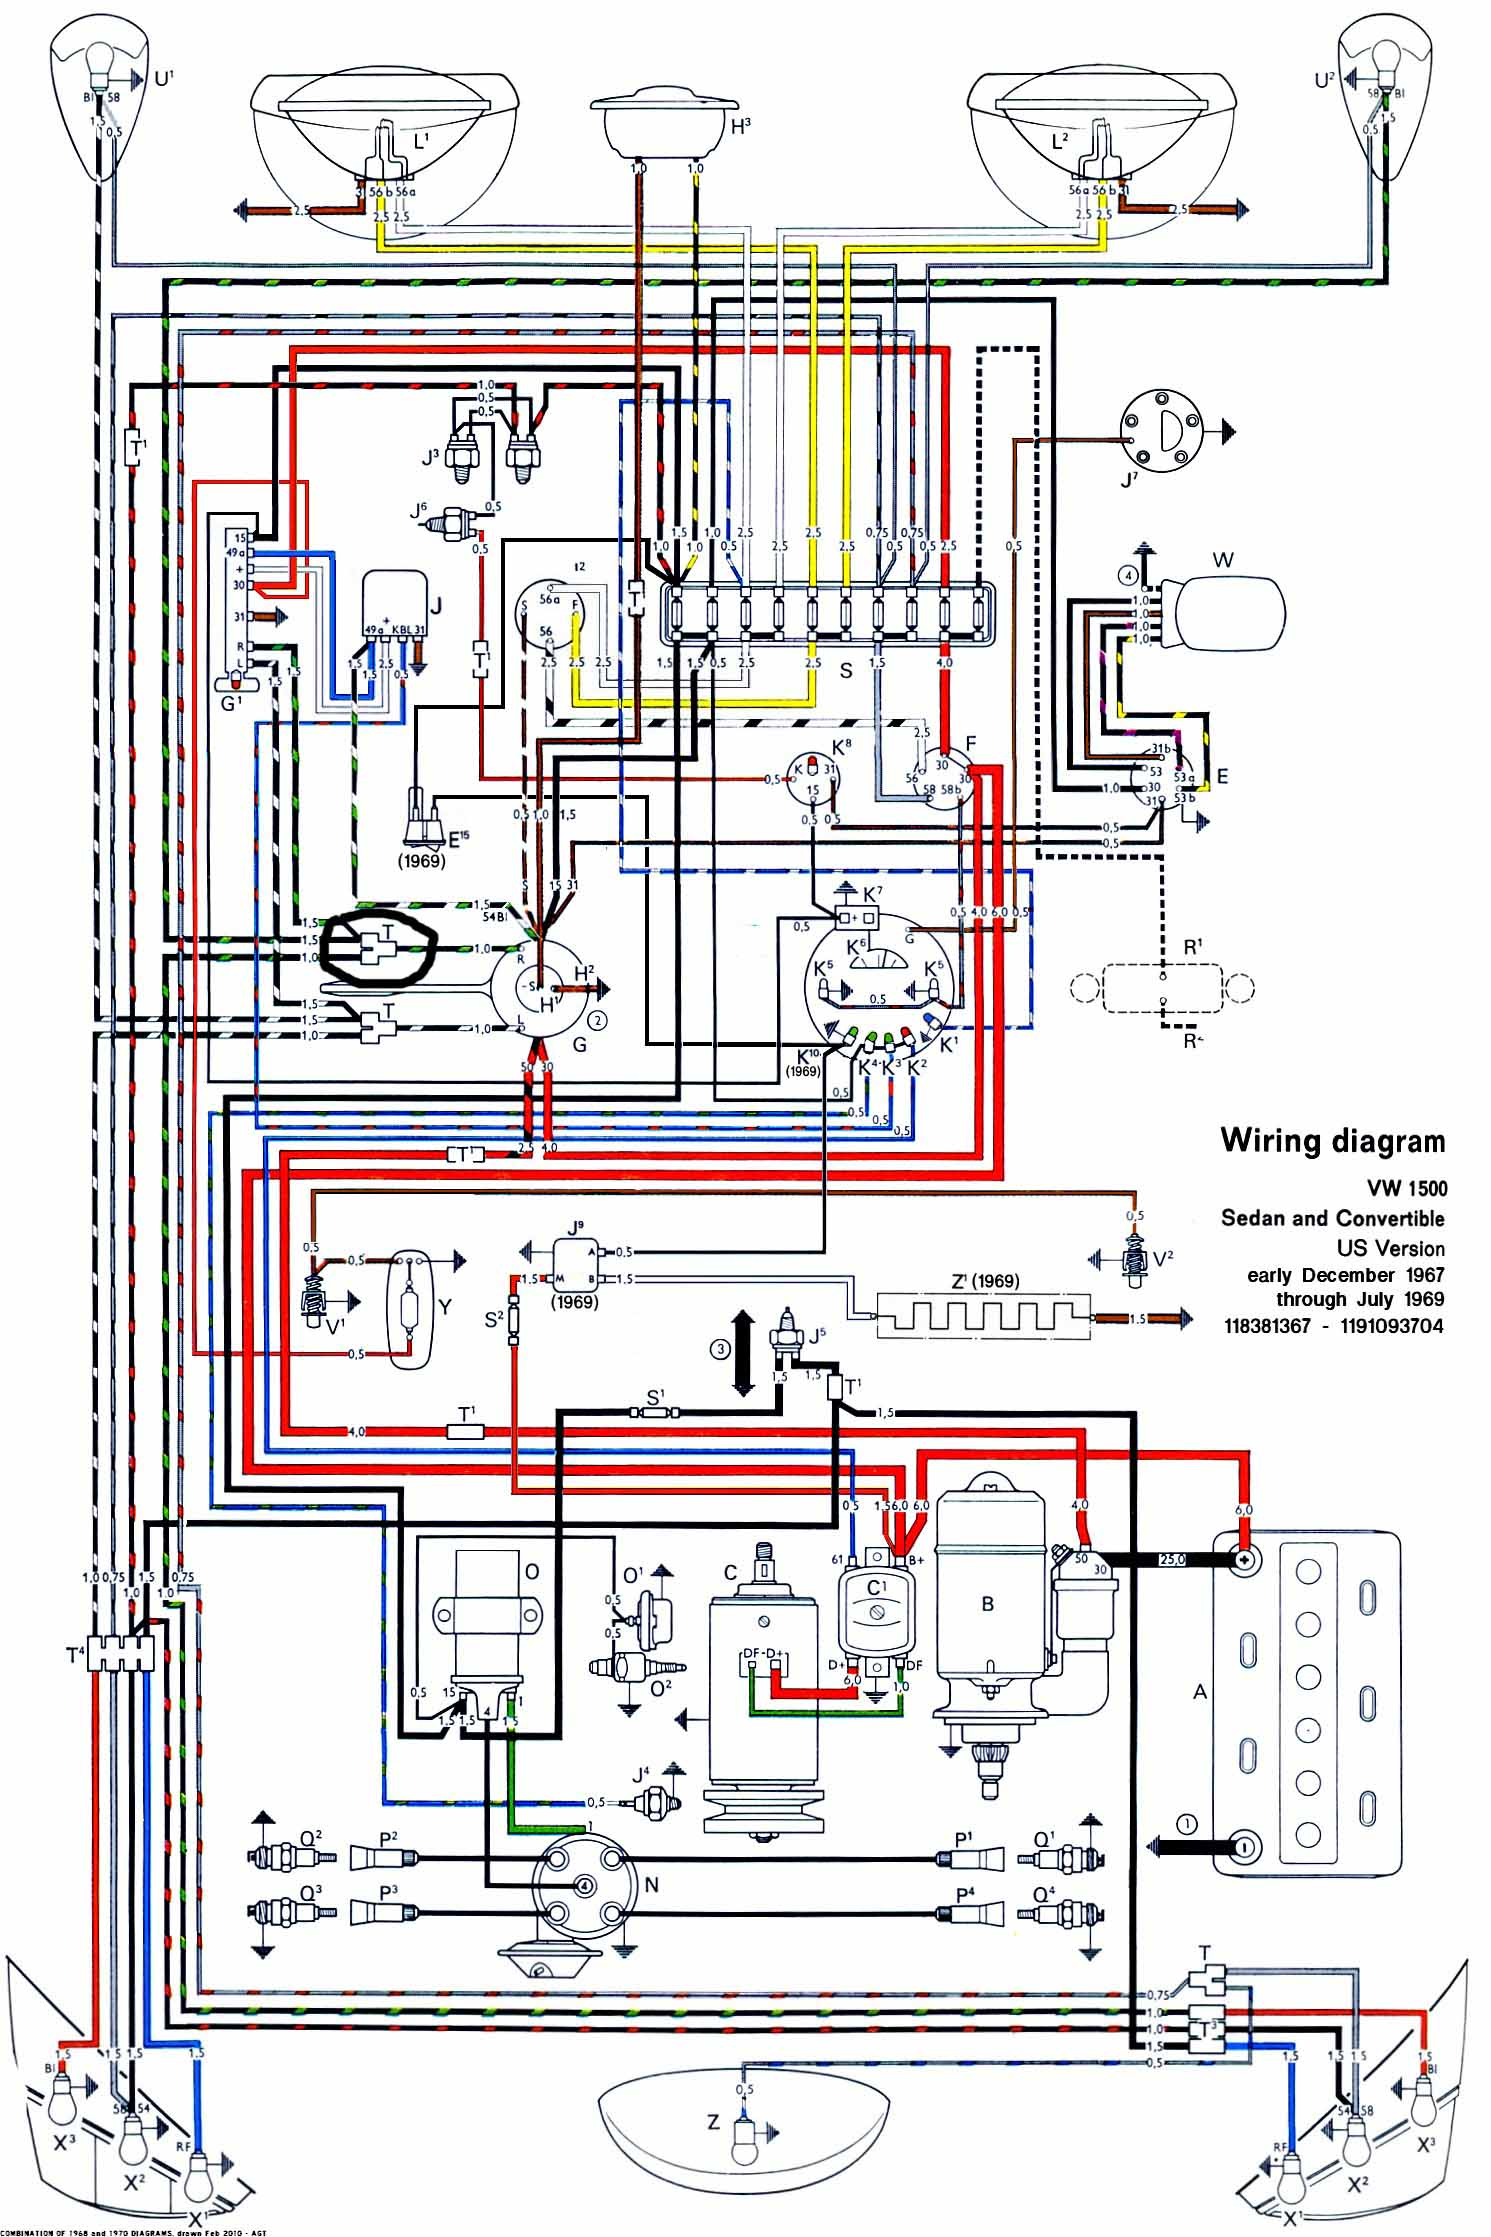 hight resolution of wiring diagram for 1971 vw beetle the wiring diagram 1967 vw bug turn signal wiring diagram